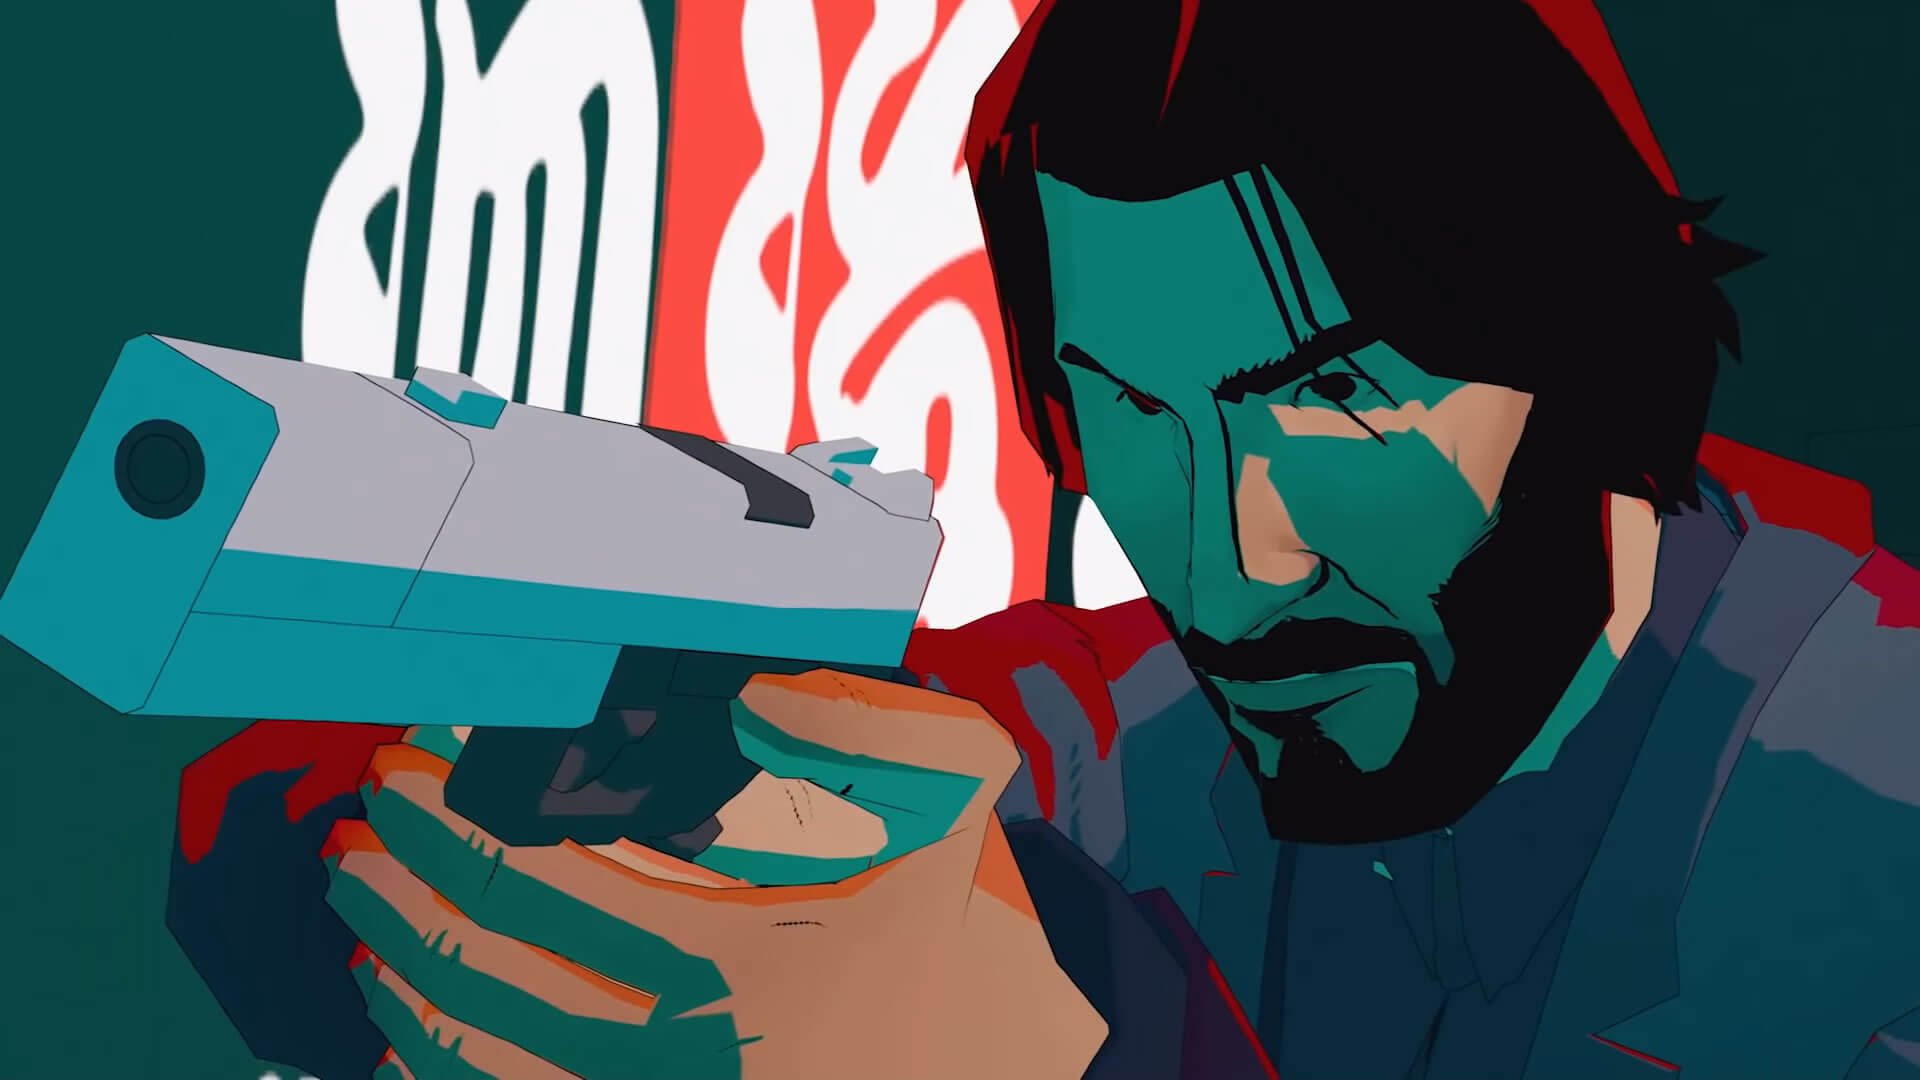 John Wick Is Getting Its Own Strategic Video Game